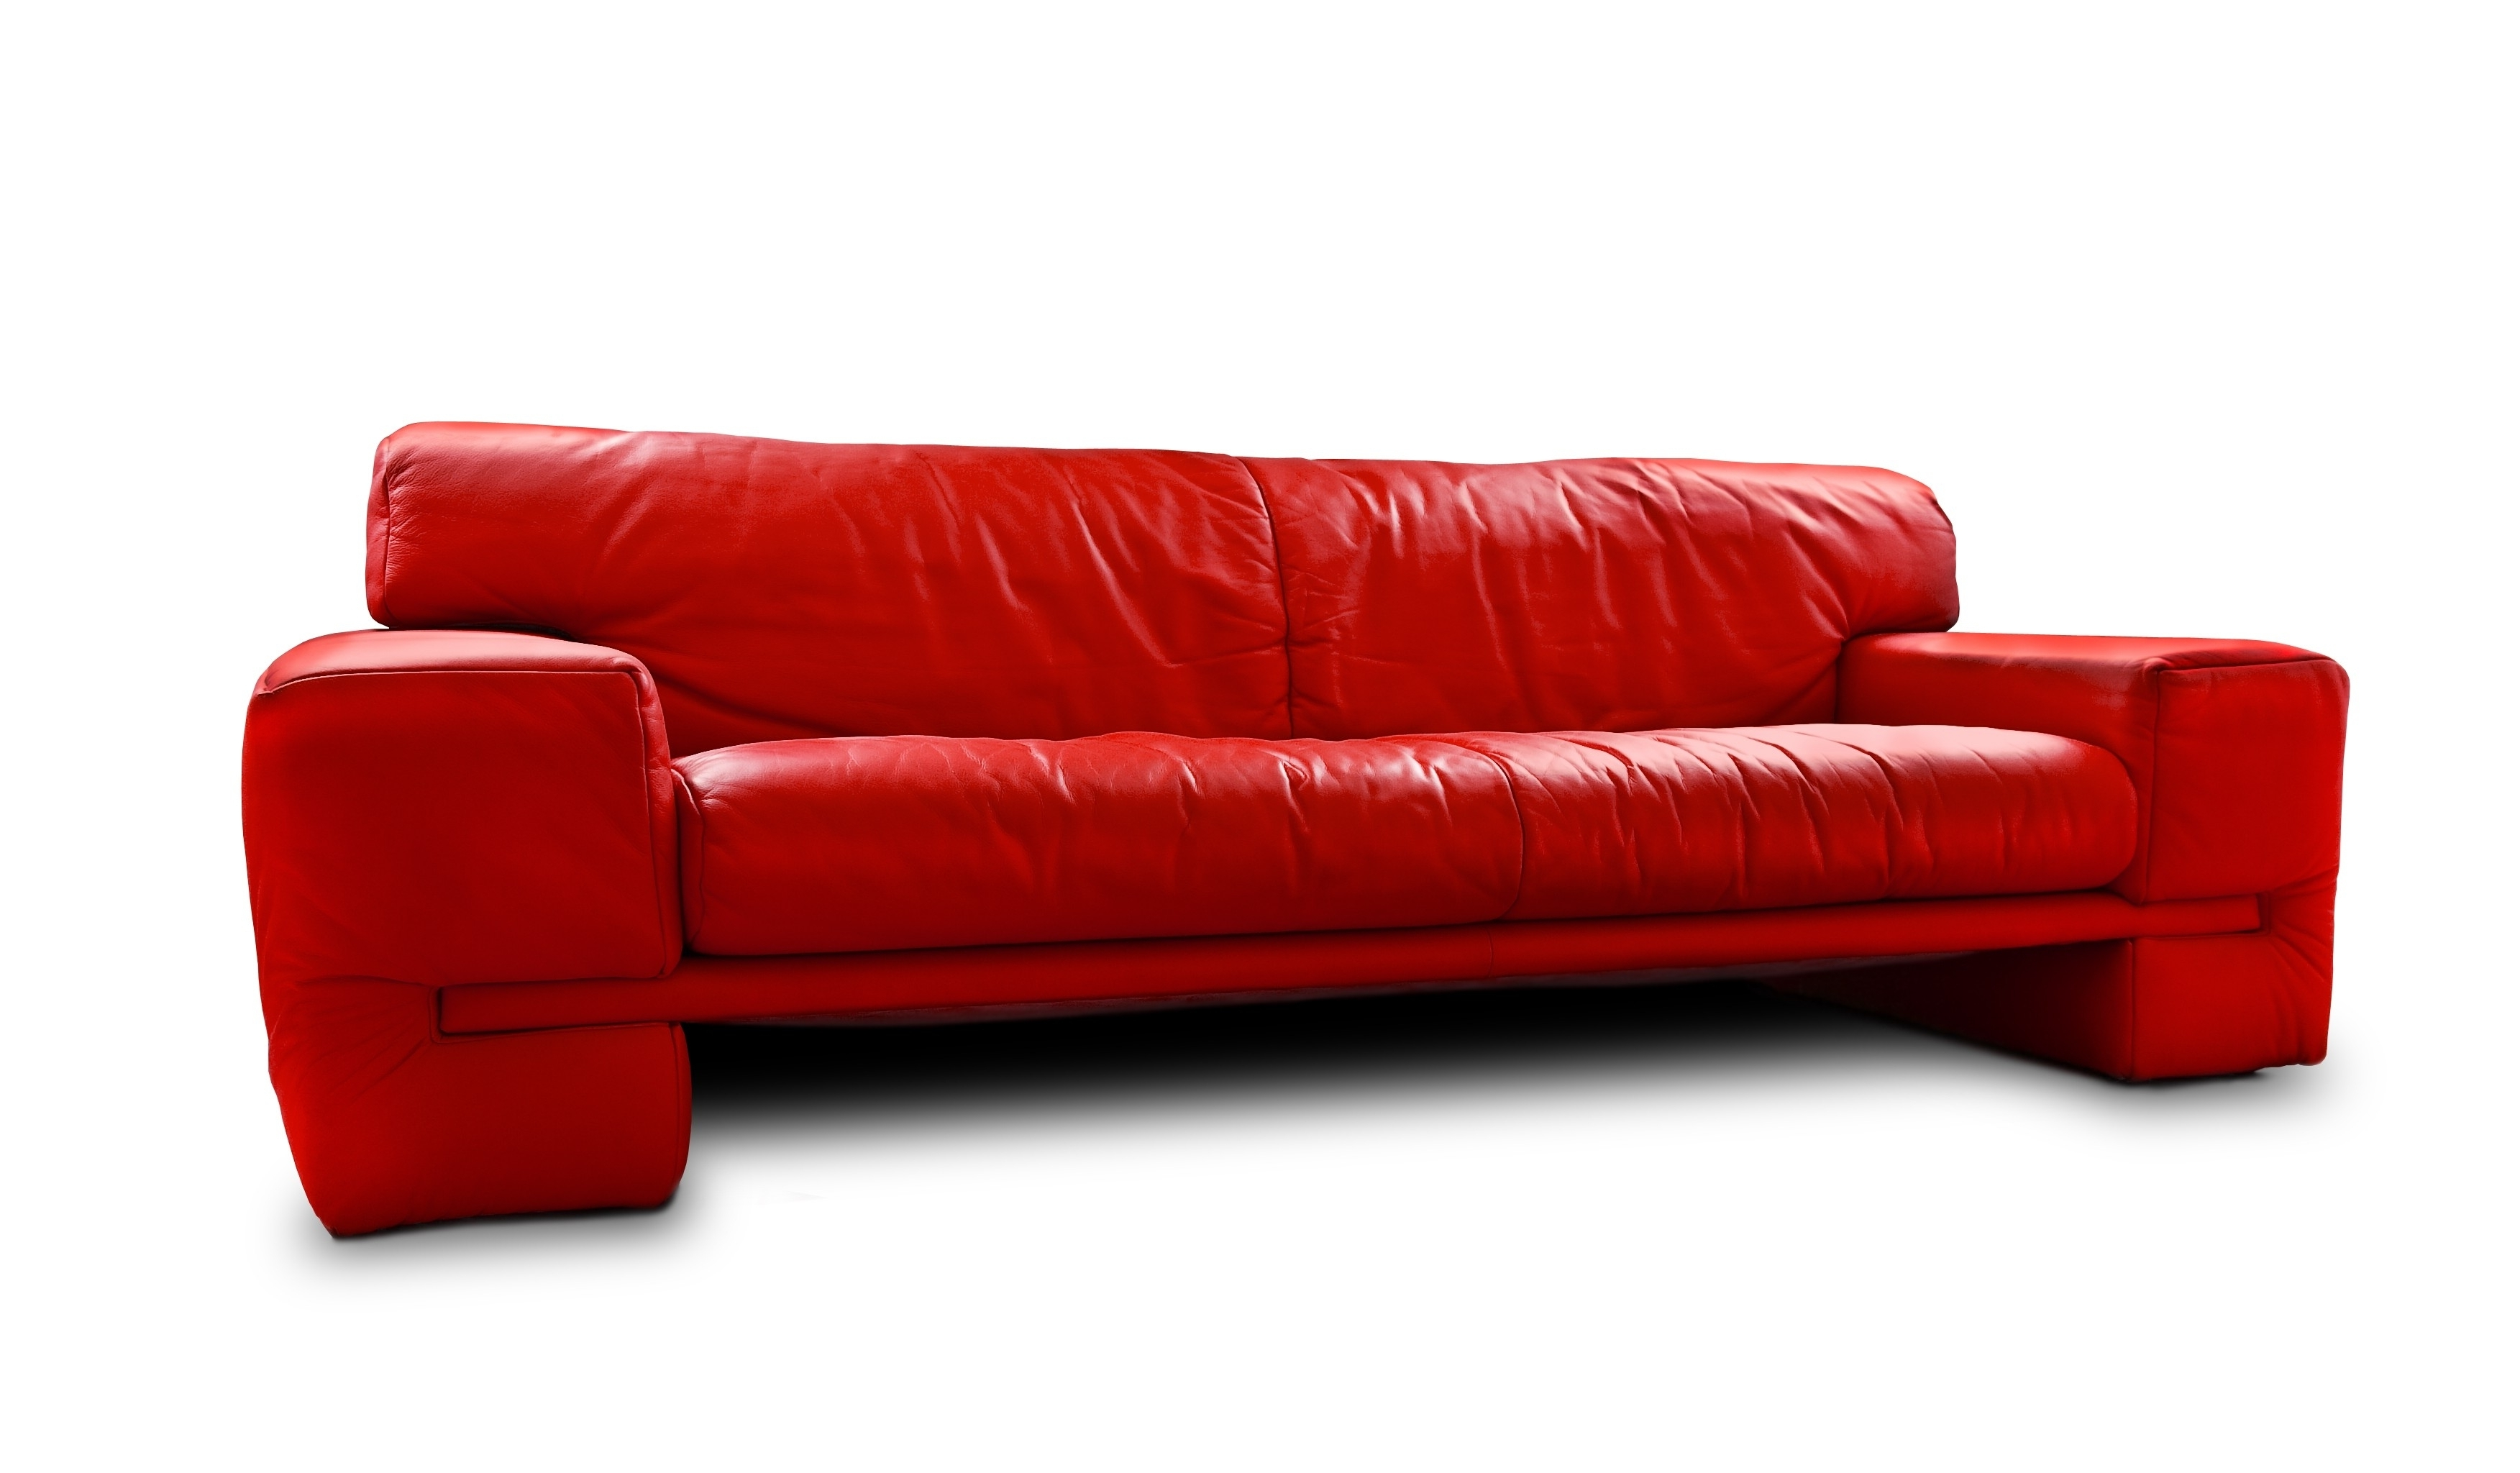 Captivating Red Leather Sleeper Sofa Cool Home Furniture Ideas In Current Red Sleeper Sofas (View 5 of 20)